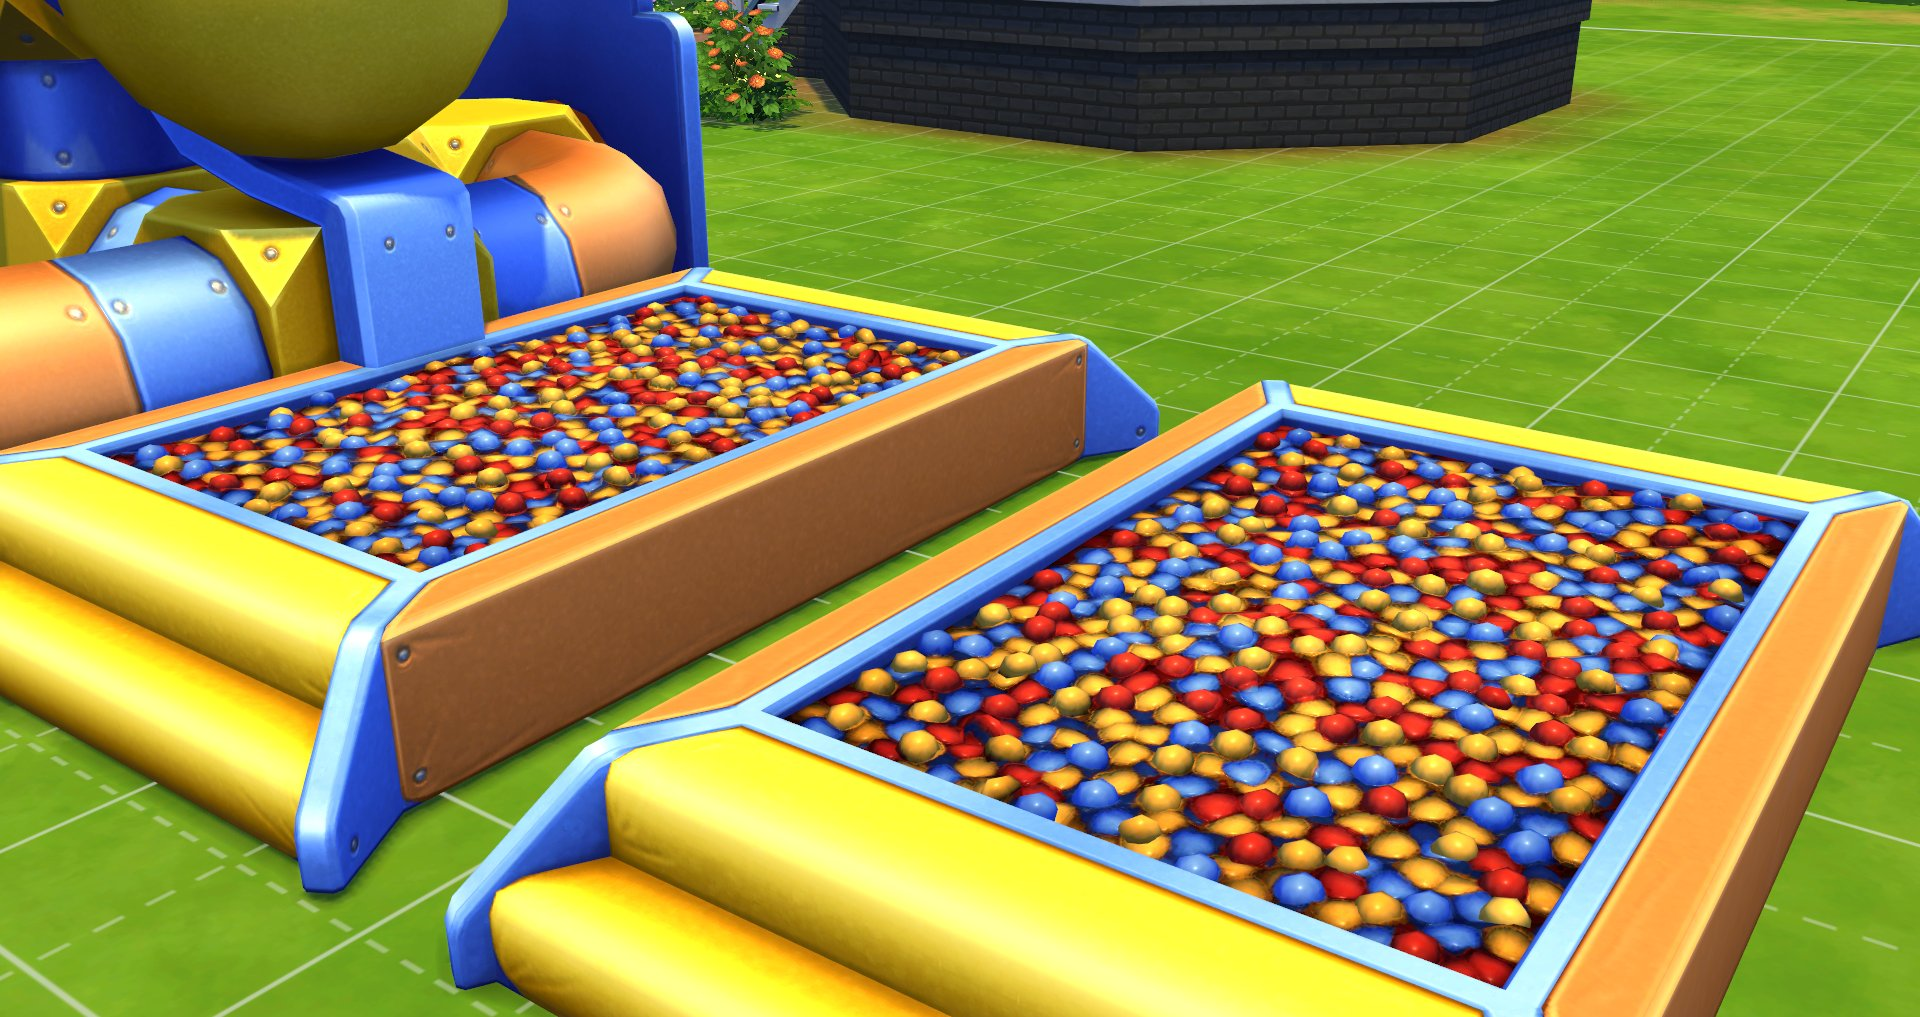 simsvip on twitter the sims 4 toddler stuff ball pit get. Black Bedroom Furniture Sets. Home Design Ideas